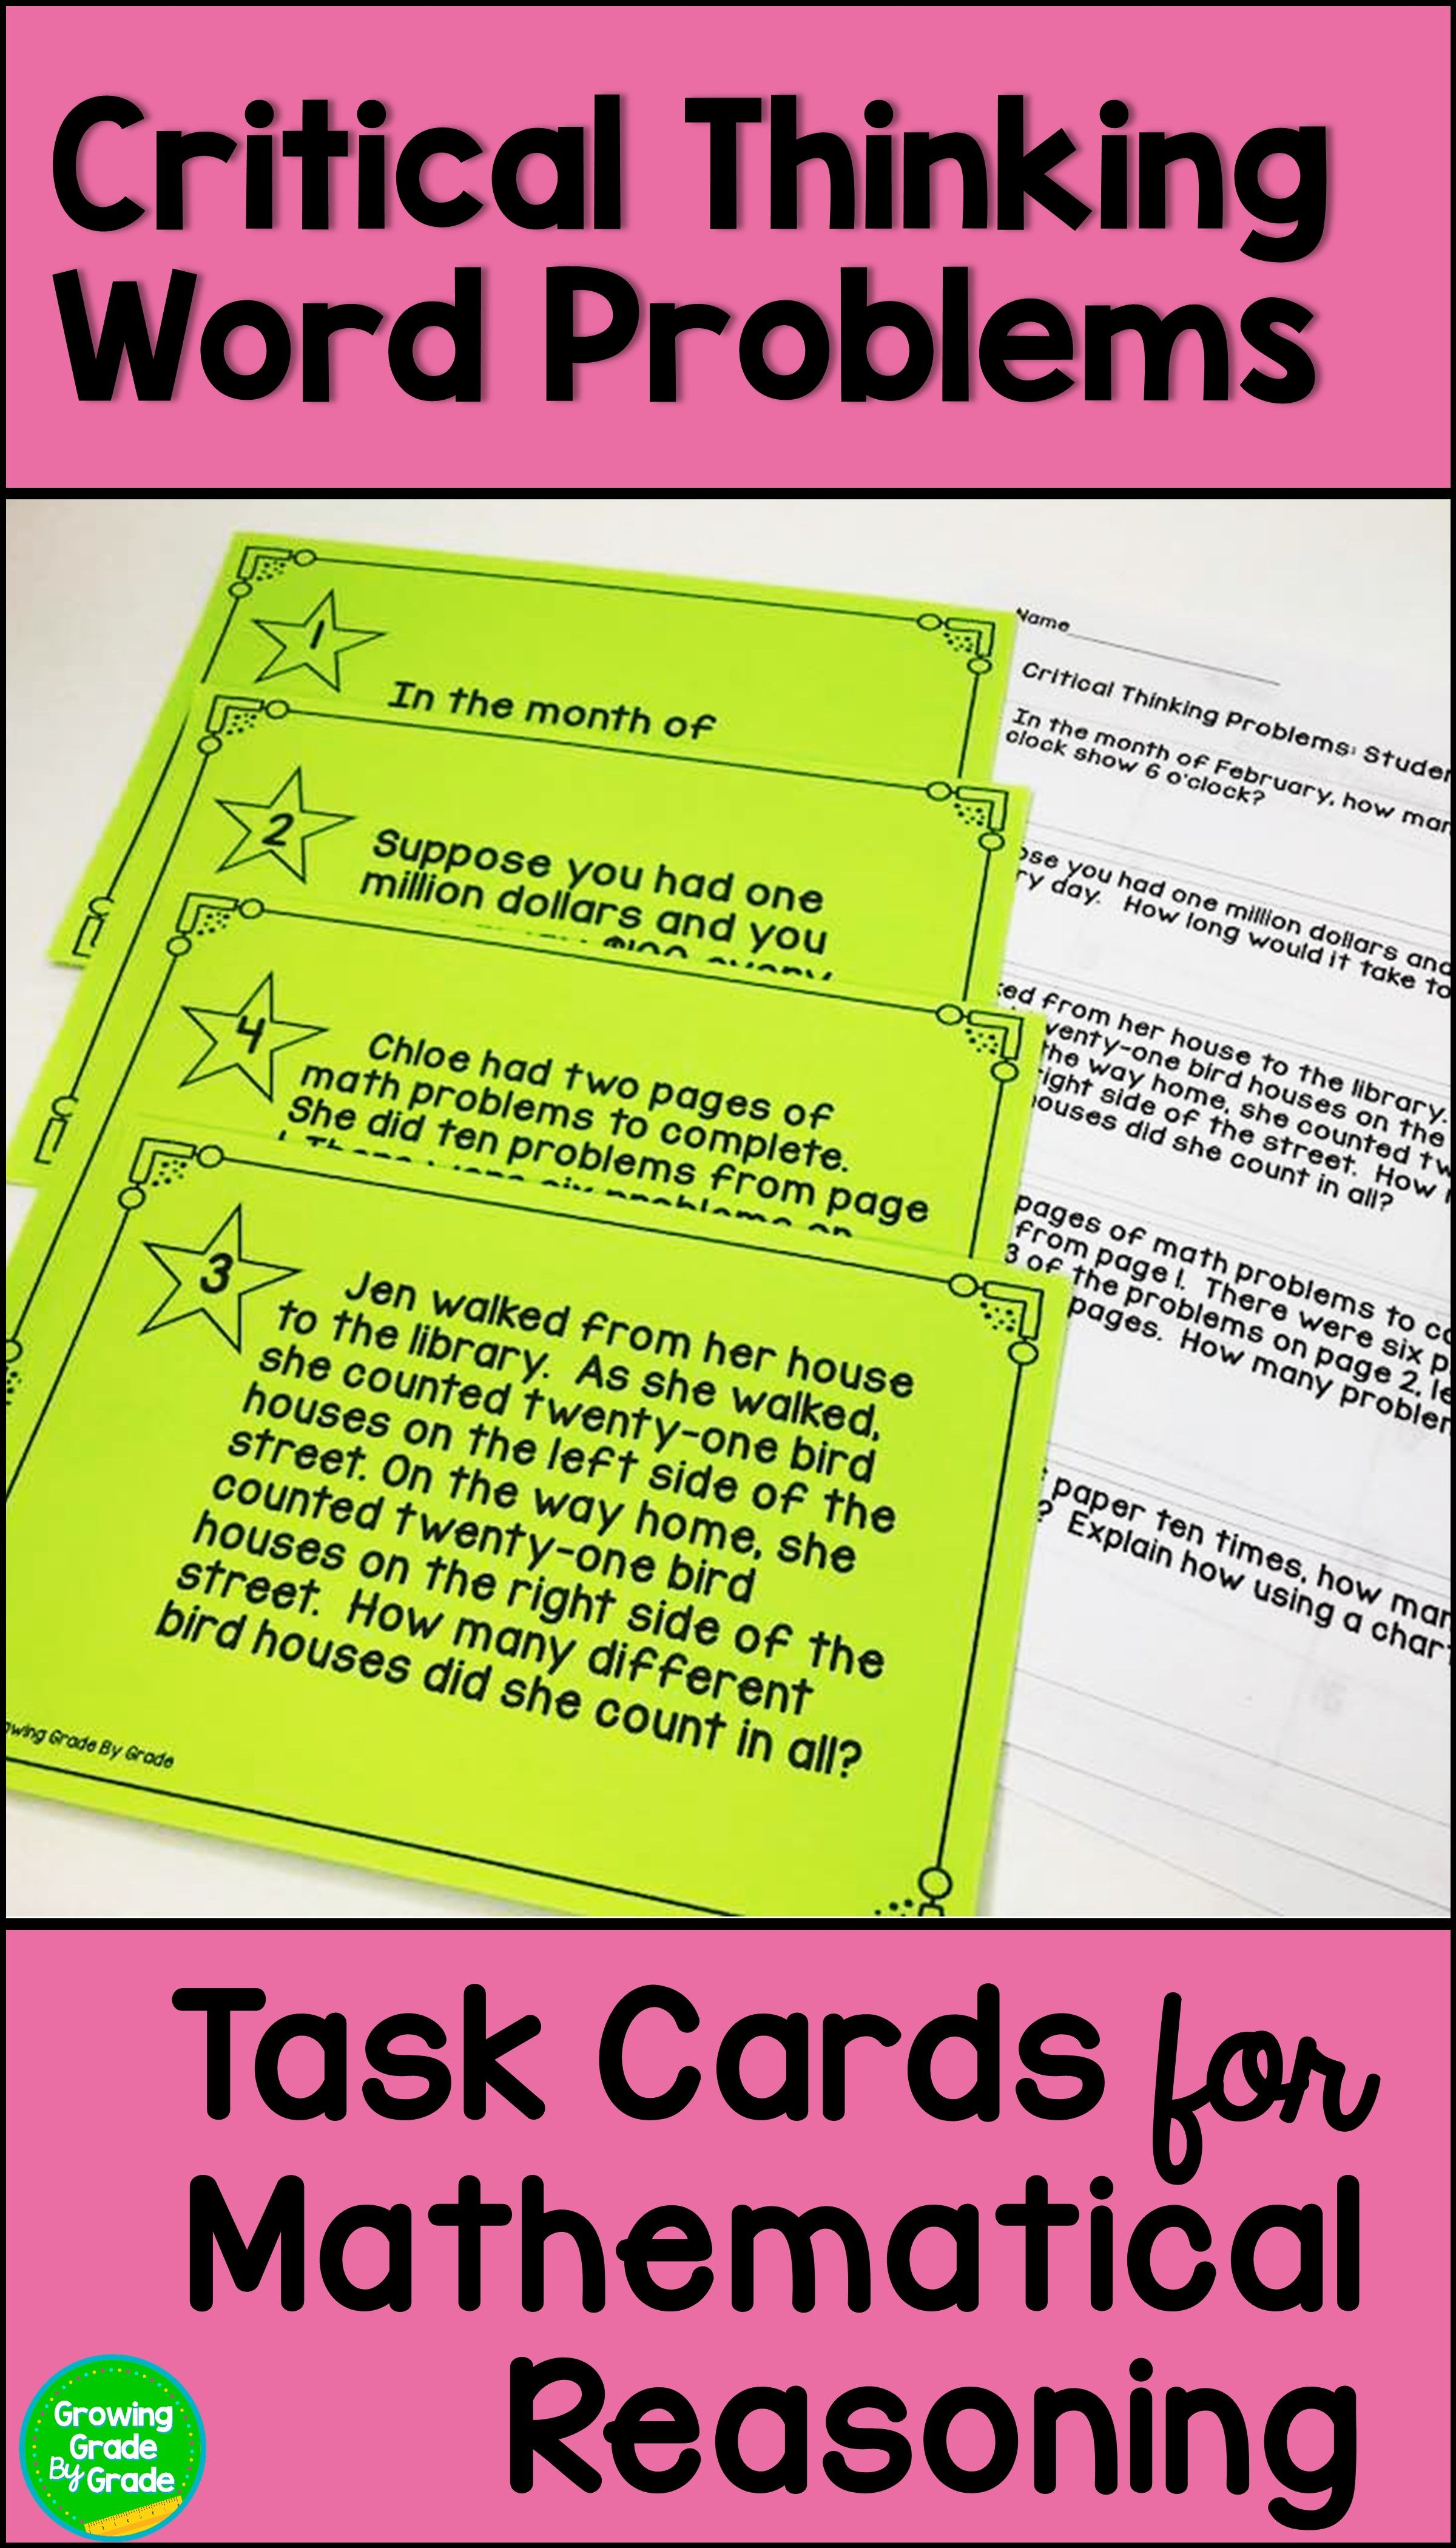 Critical Thinking Worksheets For   Printable Worksheets and Activities for  Teachers [ 4200 x 2400 Pixel ]